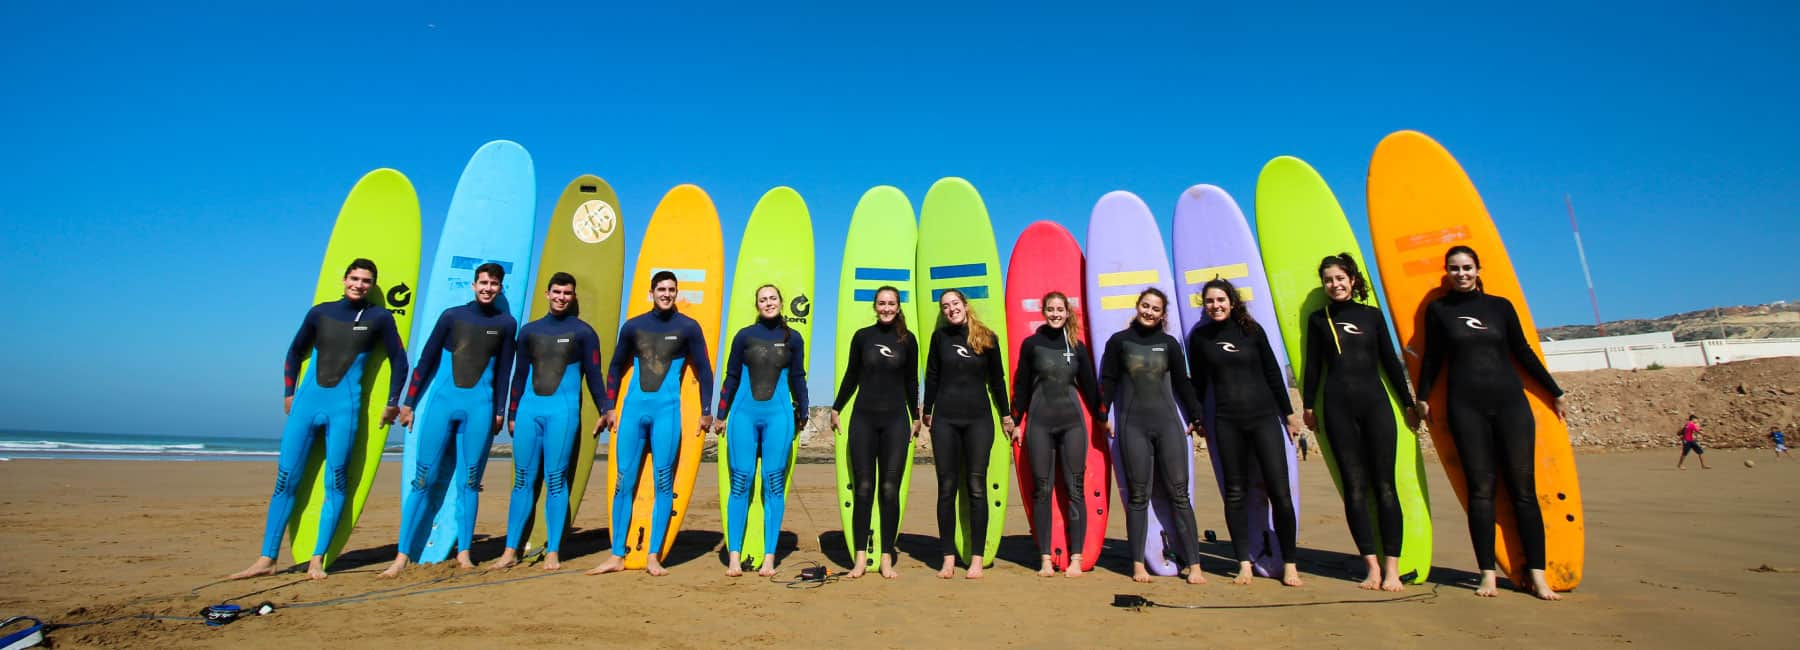 group surf lessons blue waves surf school